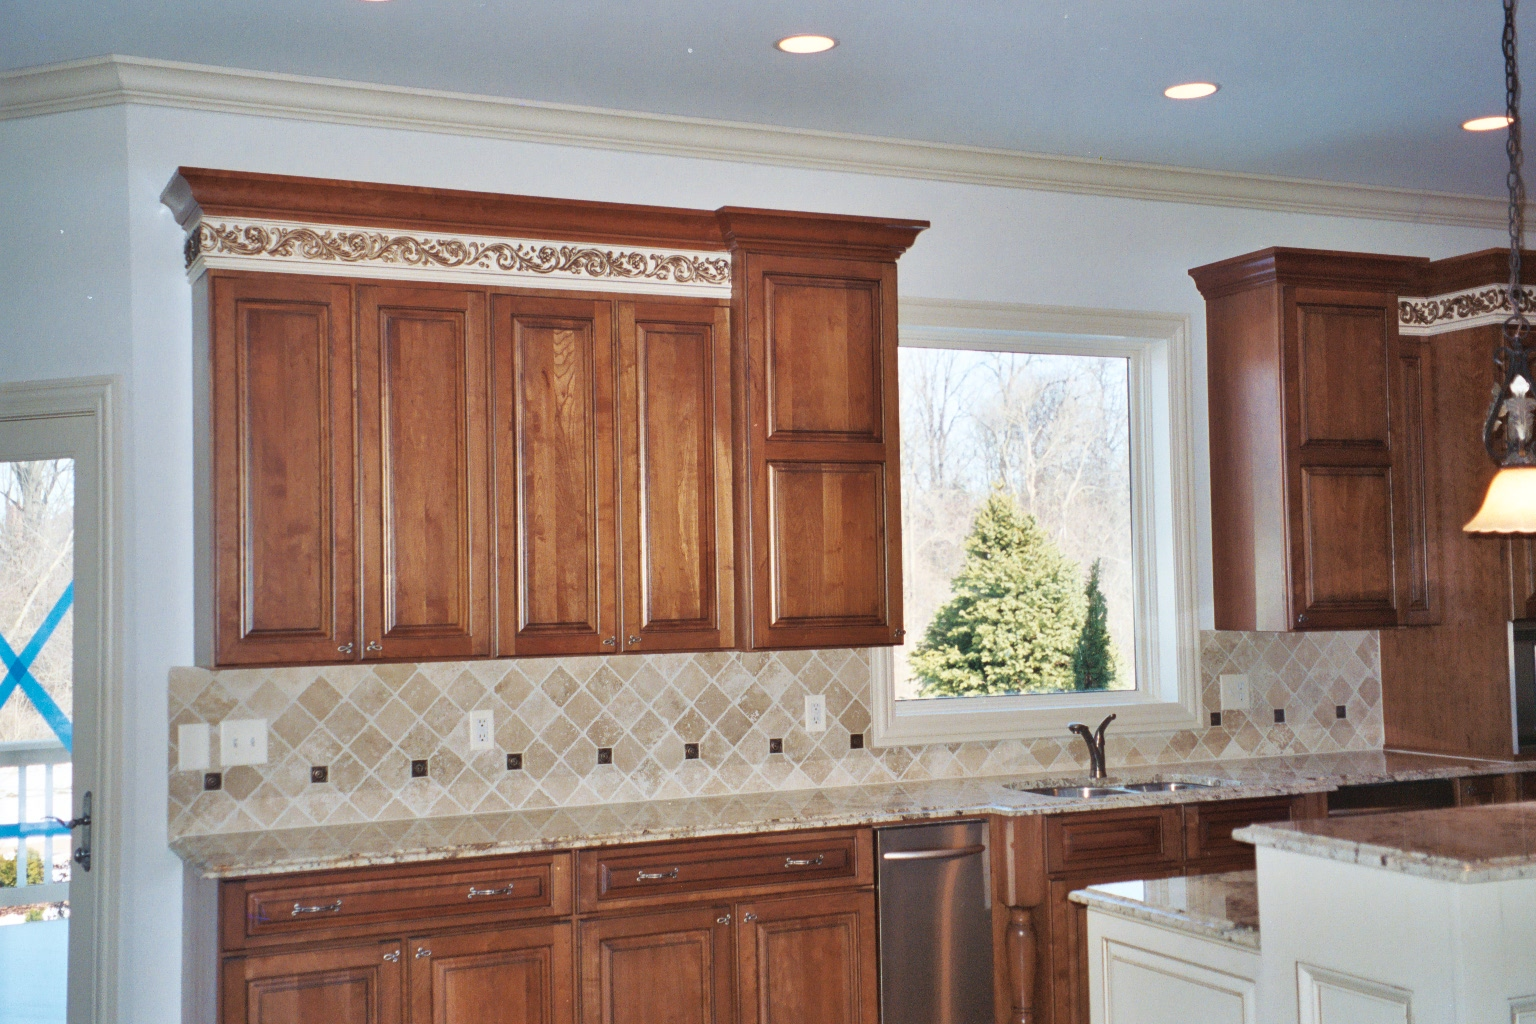 The Best Natural Stone Kitchen Backsplash Tile | BELK Tile